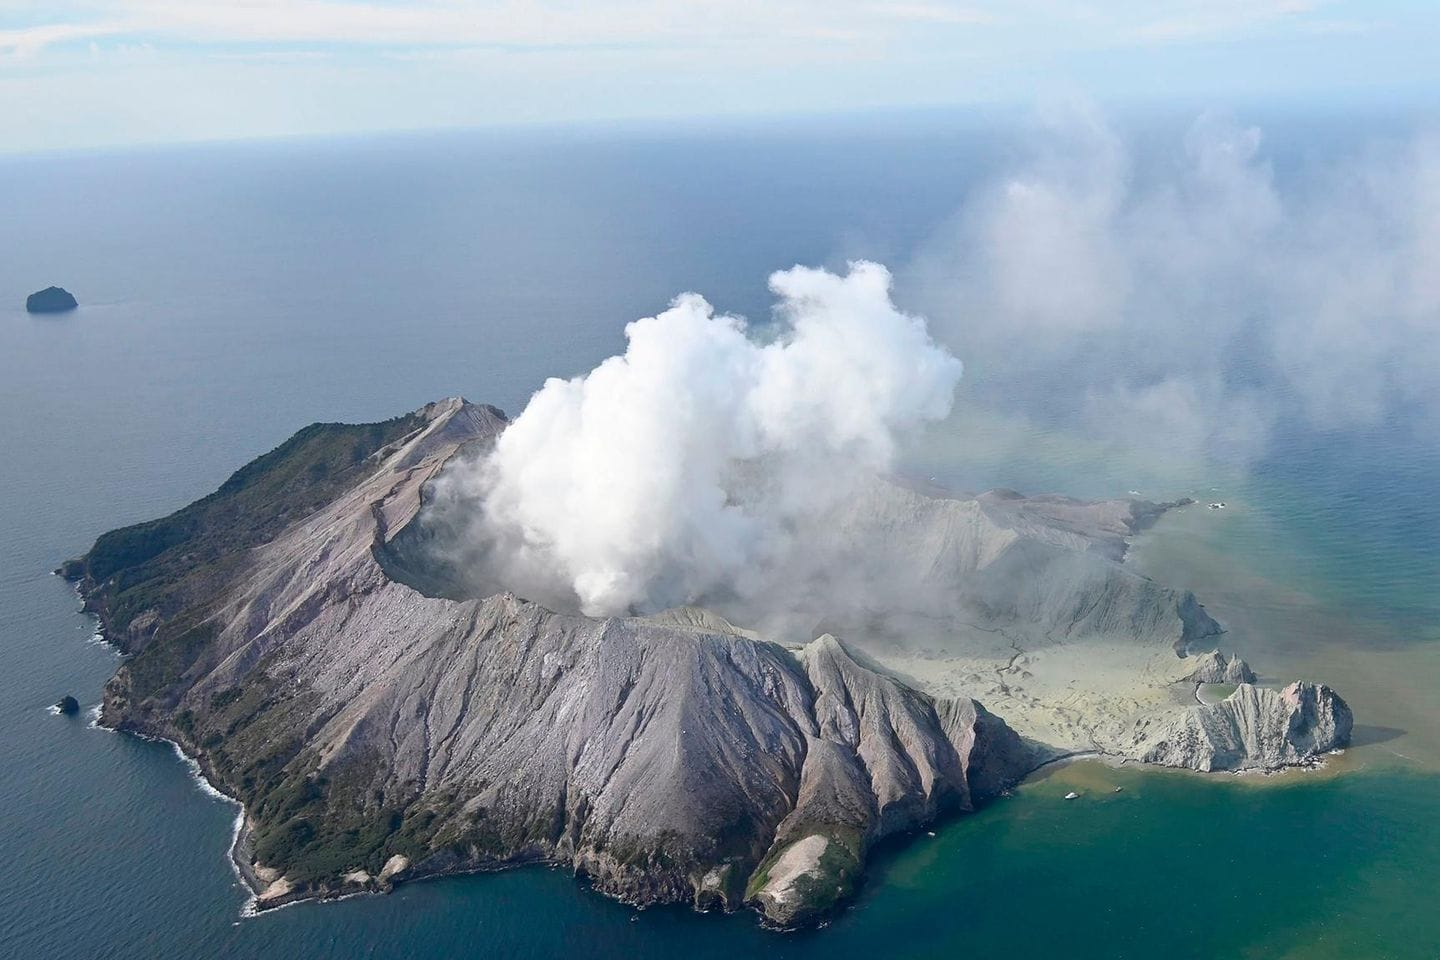 Latest News: One dead, many missing, after volcanic eruption on New Zealand island popular with tourists – The Washington Post